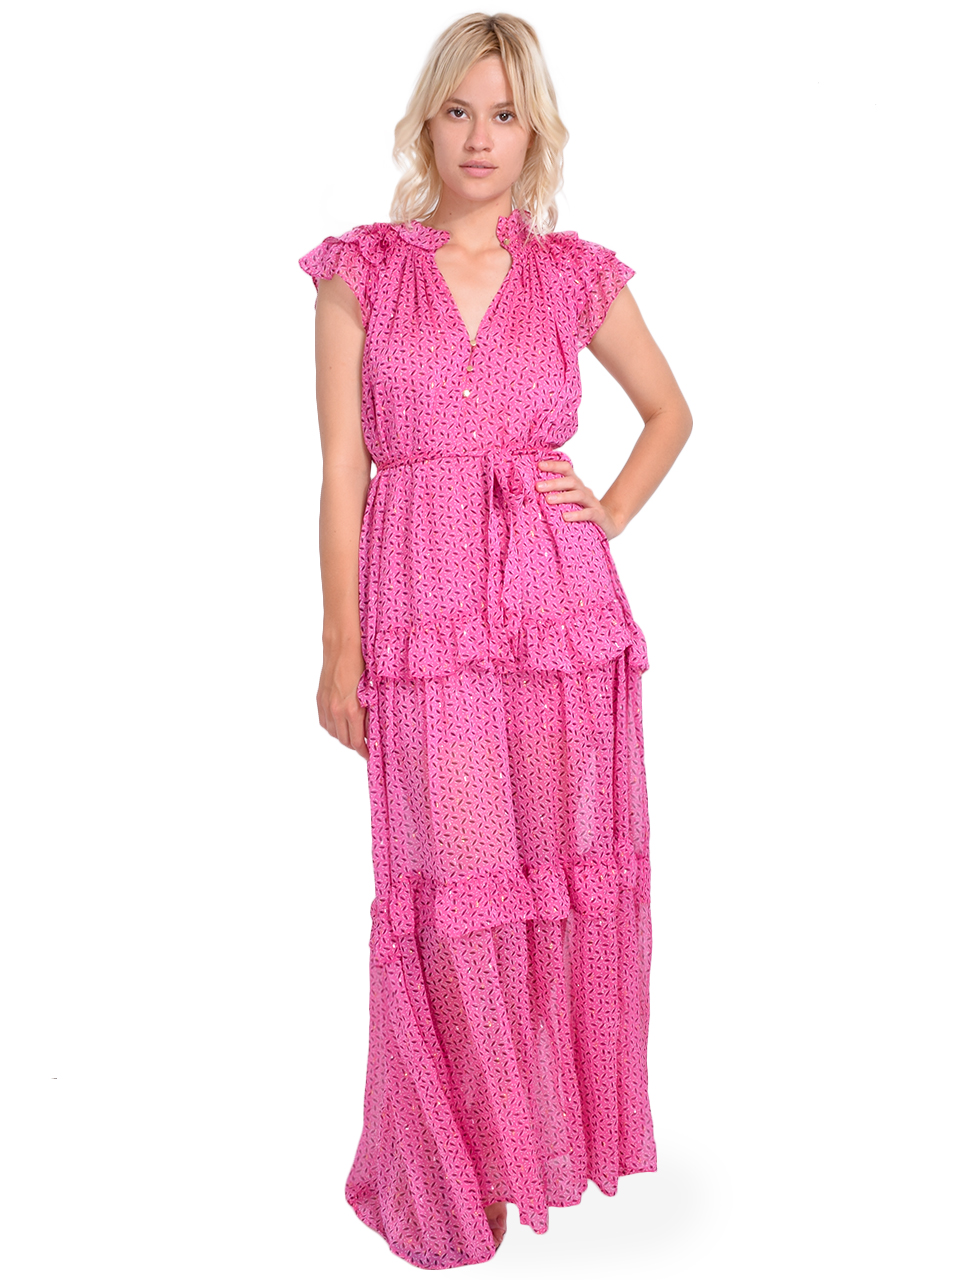 Sabina Musayev Jessa Dress in Pink Print Front View X1https://cdn11.bigcommerce.com/s-3wu6n/products/33274/images/109787/81__69183.1593744393.244.365.jpg?c=2X2